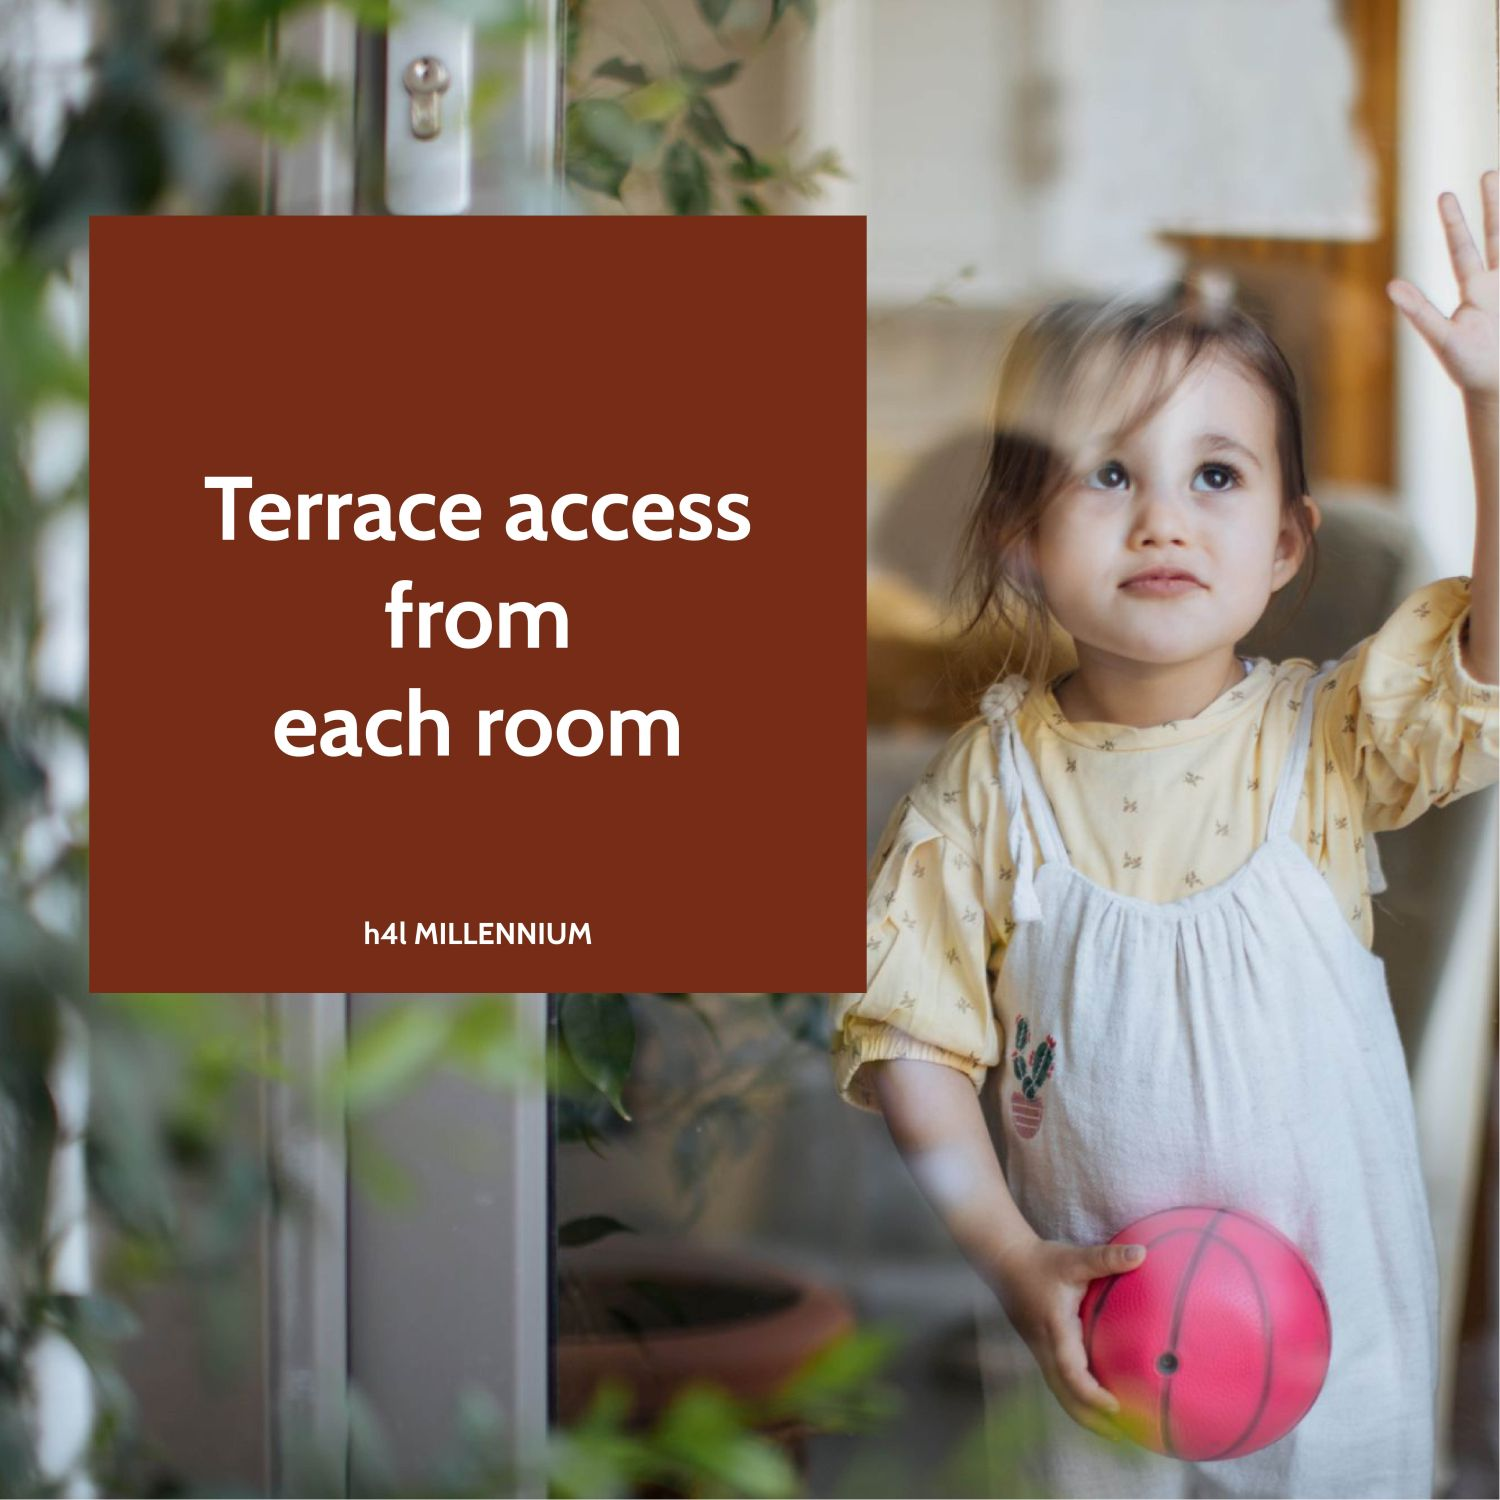 Access on the terrace from each room